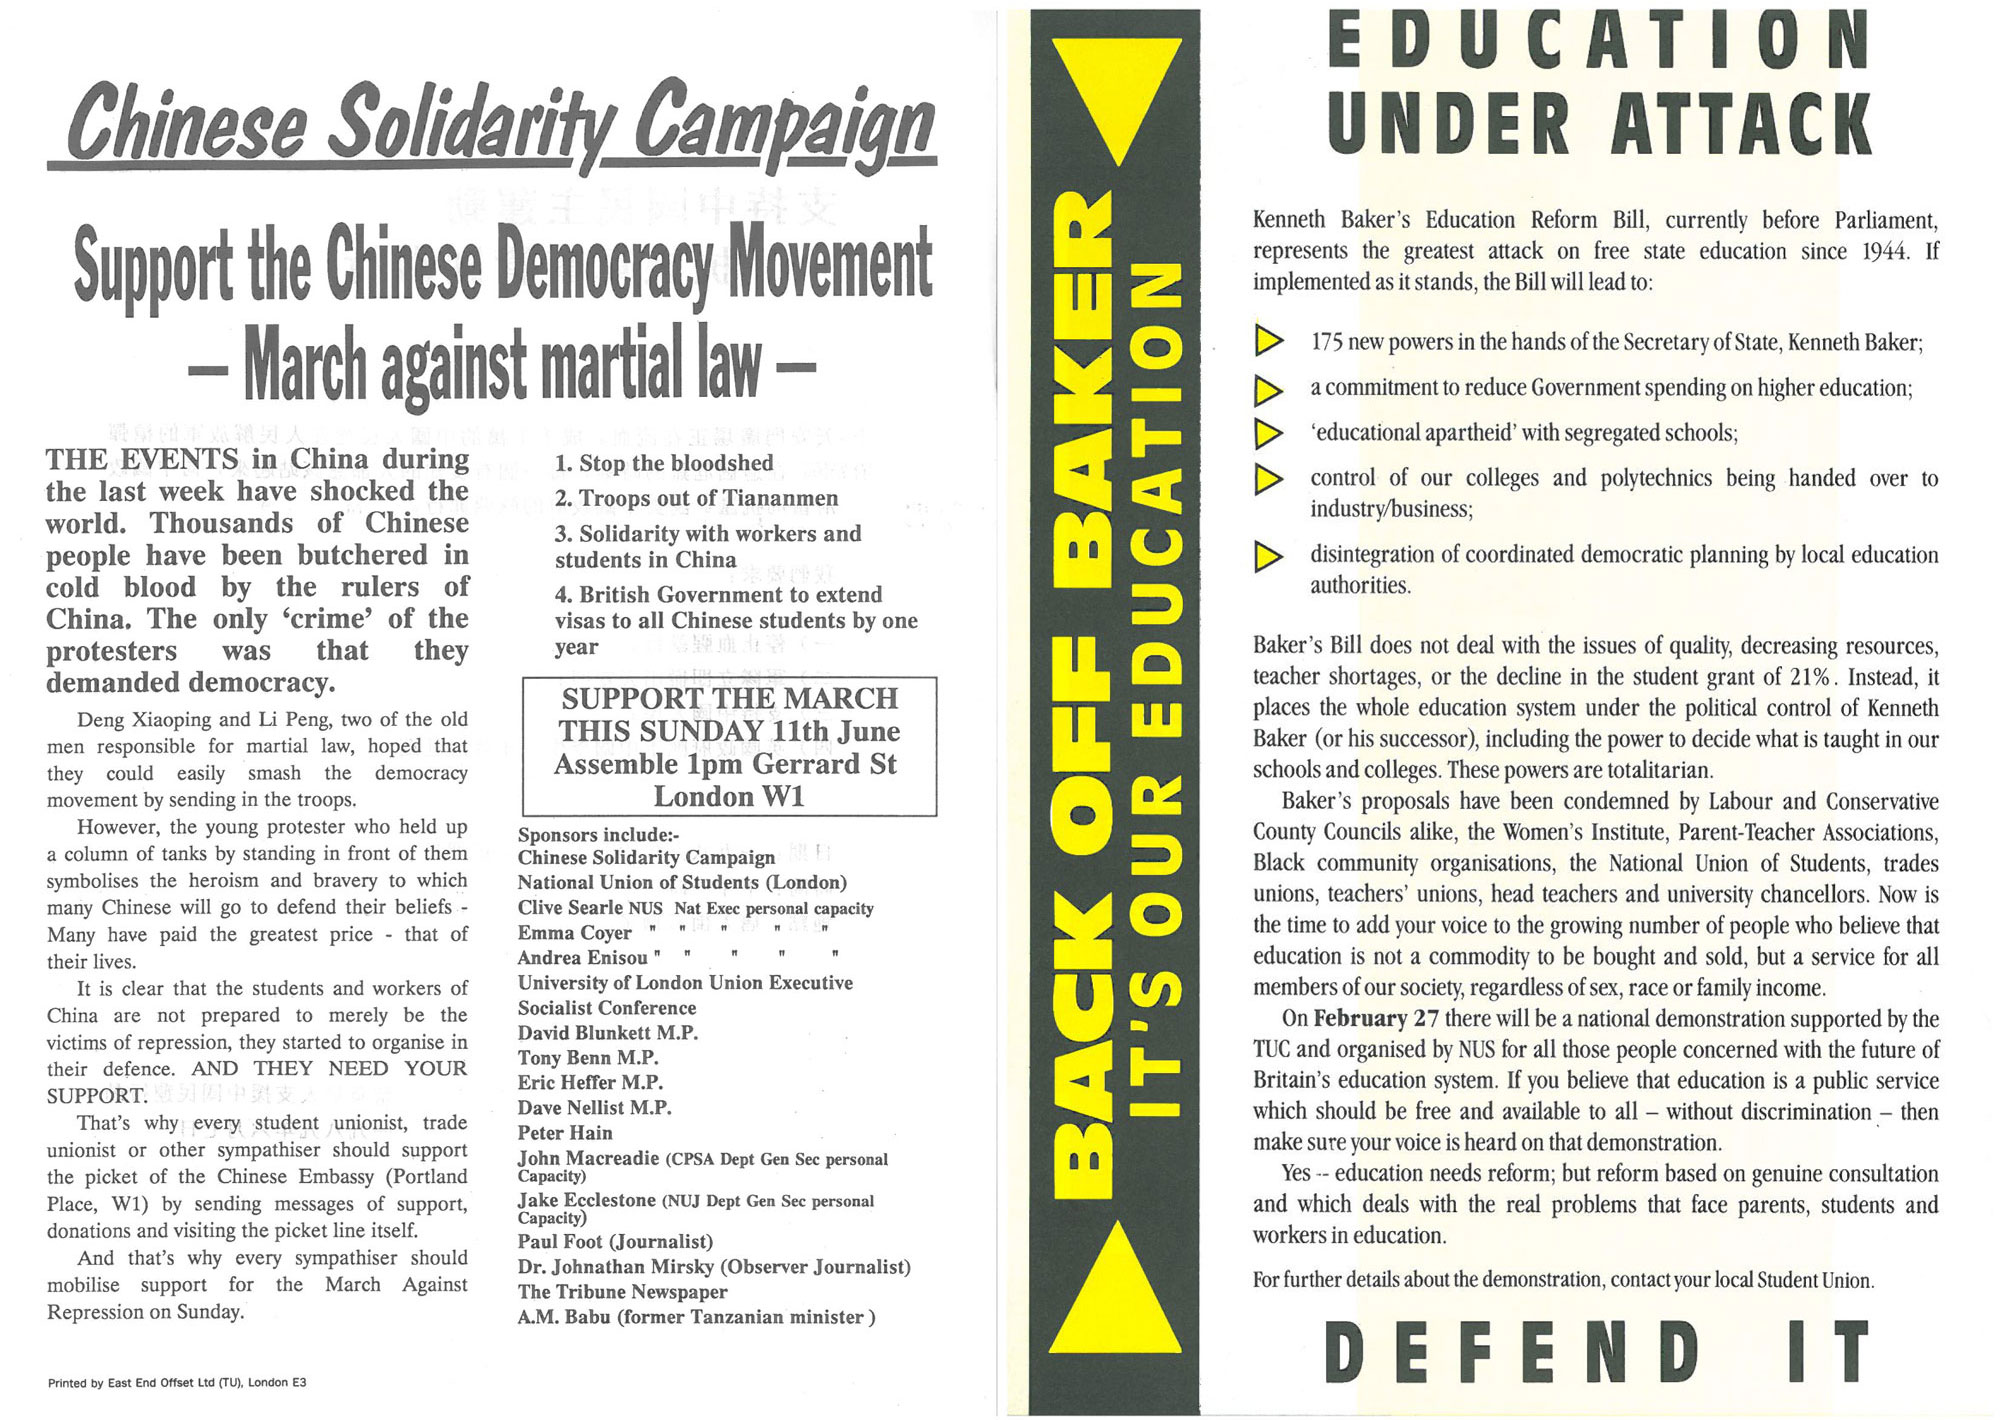 Image - Chinese solidarity campaign 1989